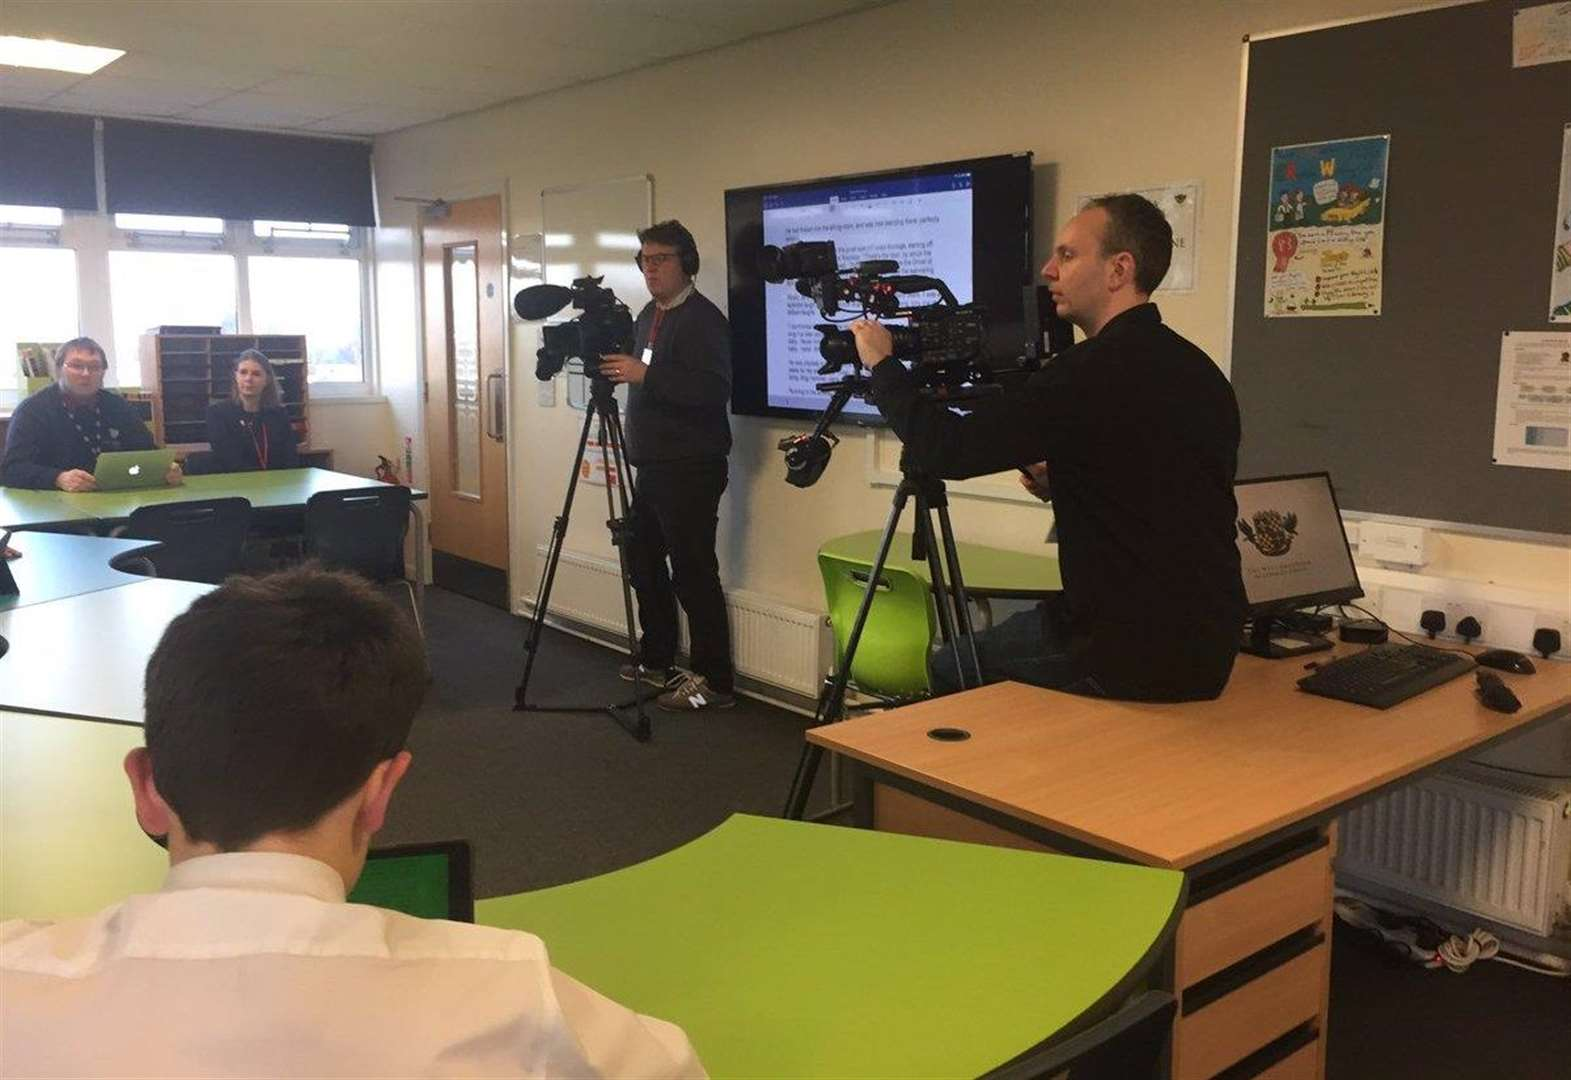 Grantham school filmed for case study on technology in the classroom